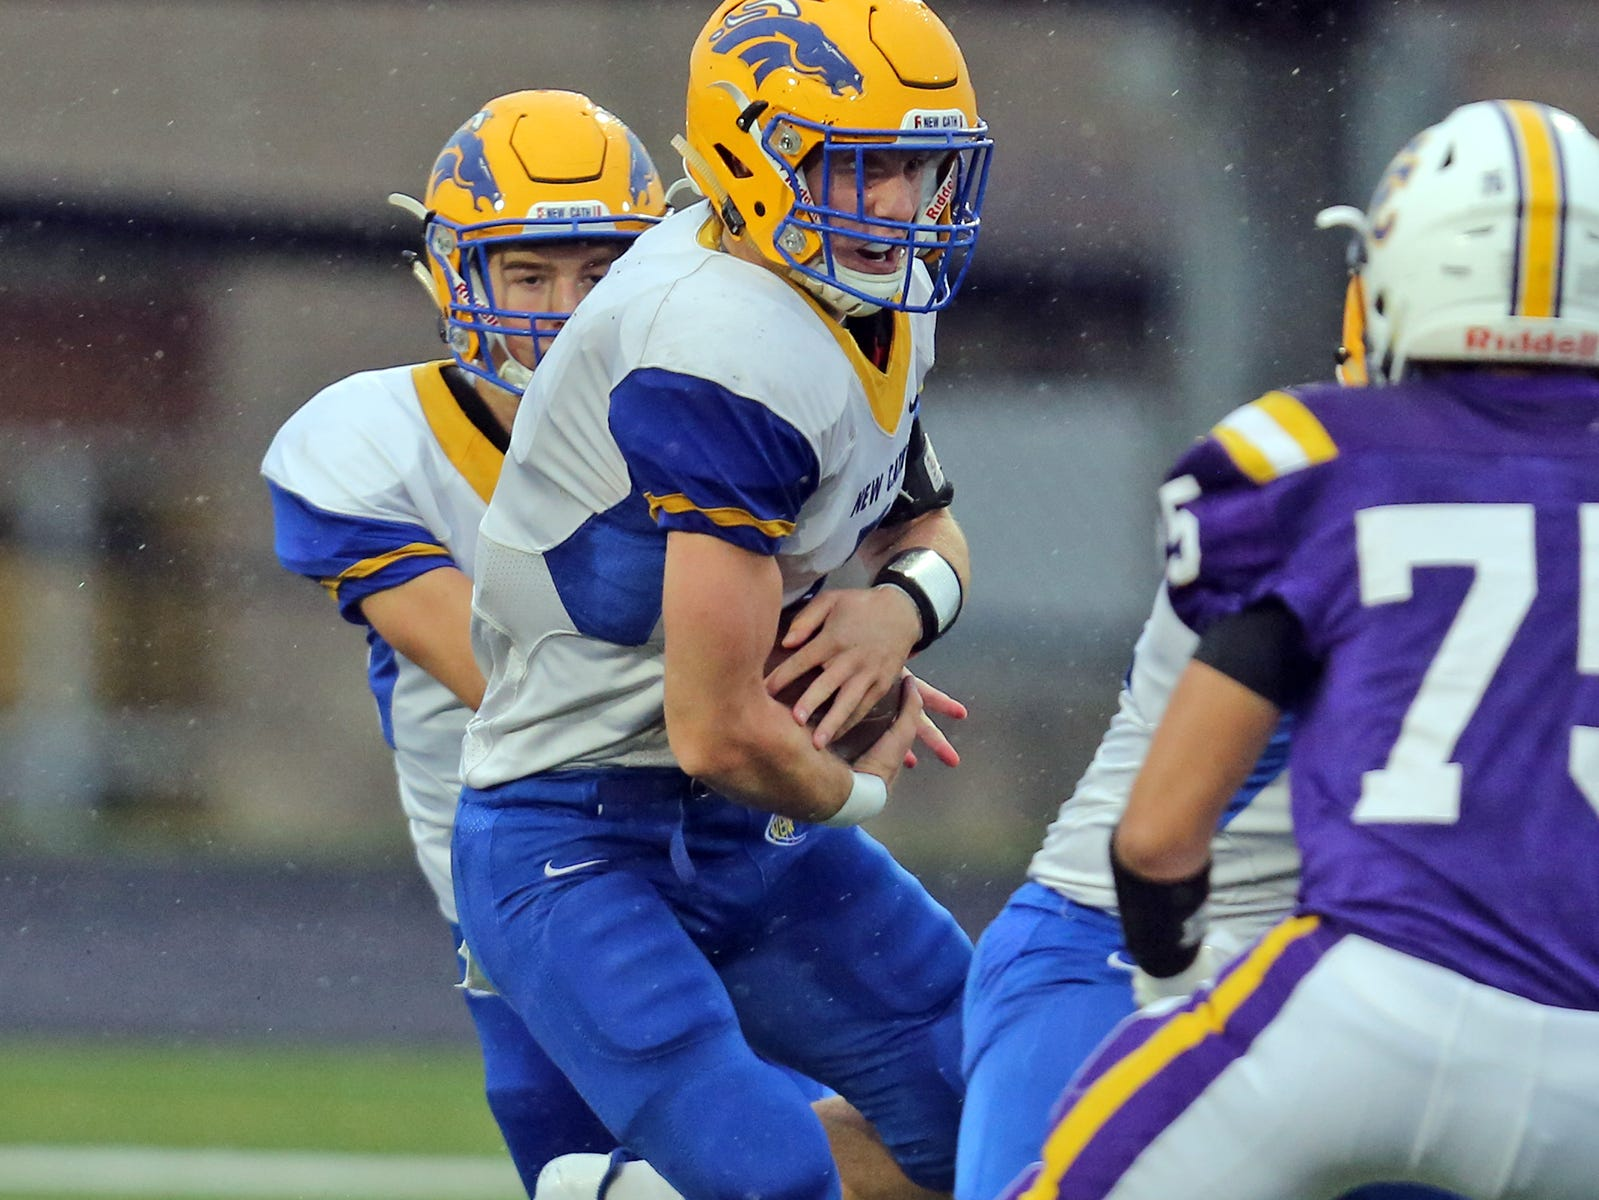 Kyle Kelly runs the ball for the New Cath Thoroughbreds against Campbell County.